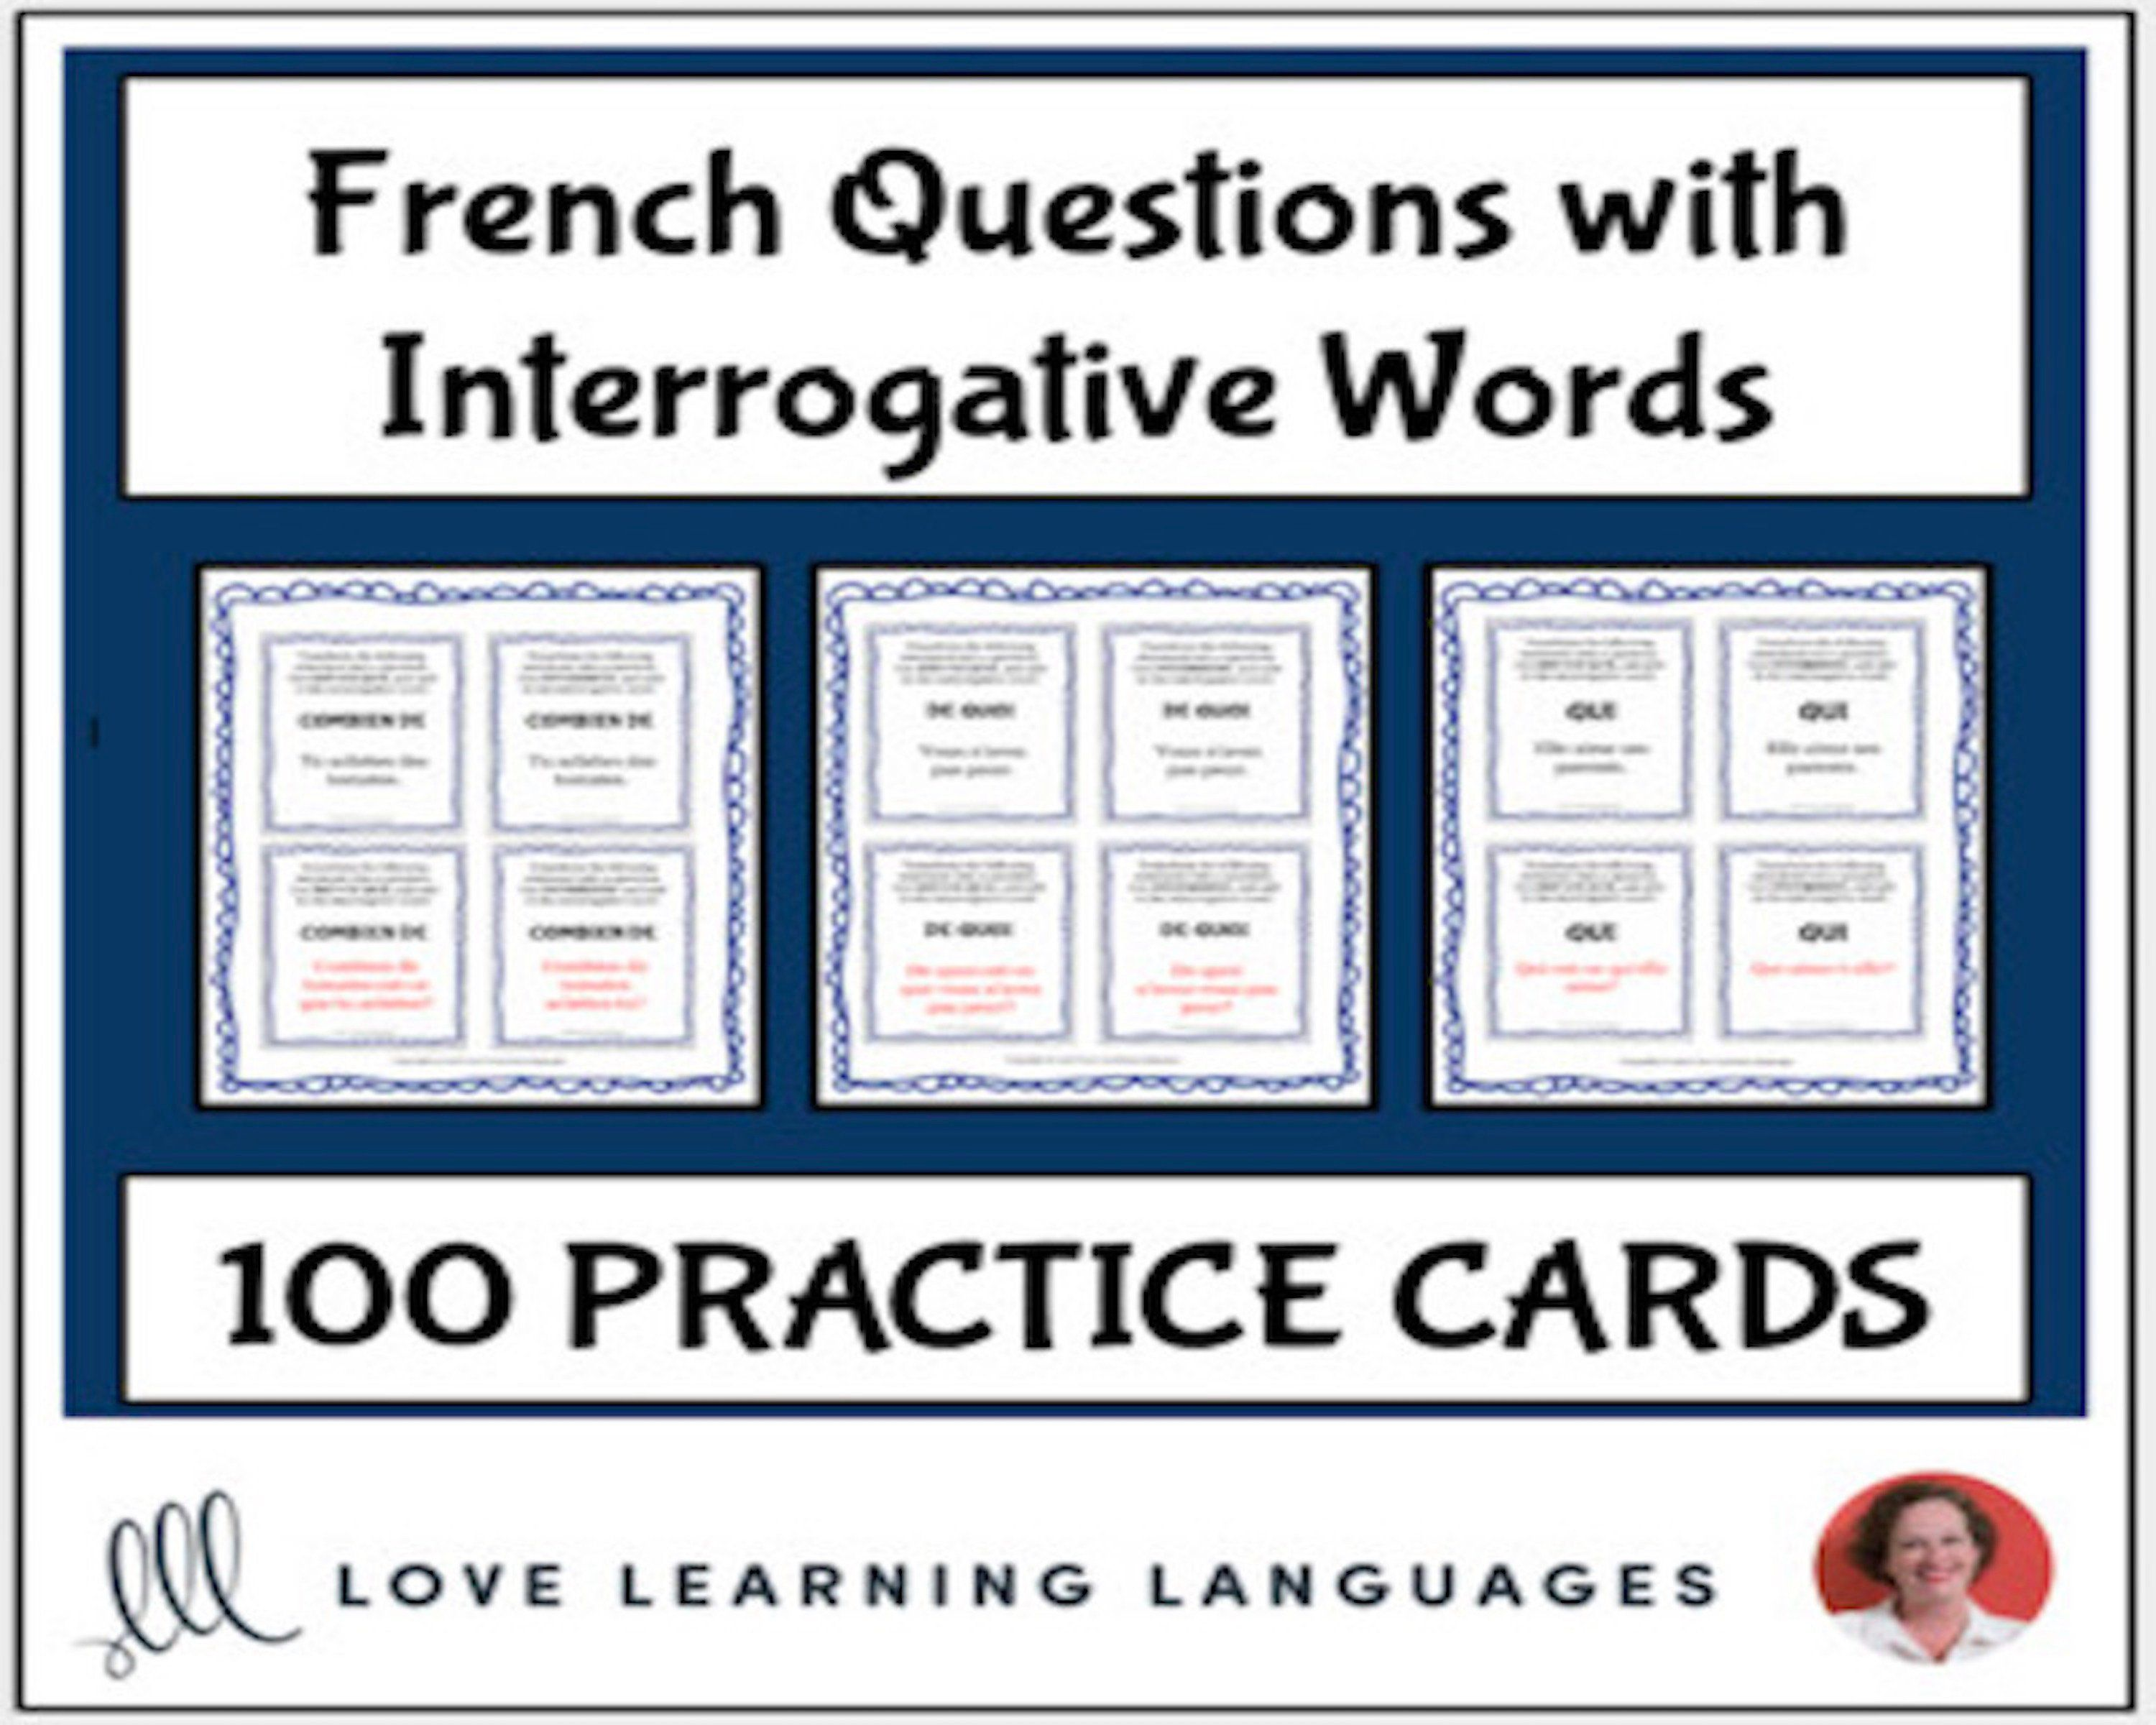 Forming French Questions With Interrogative Words